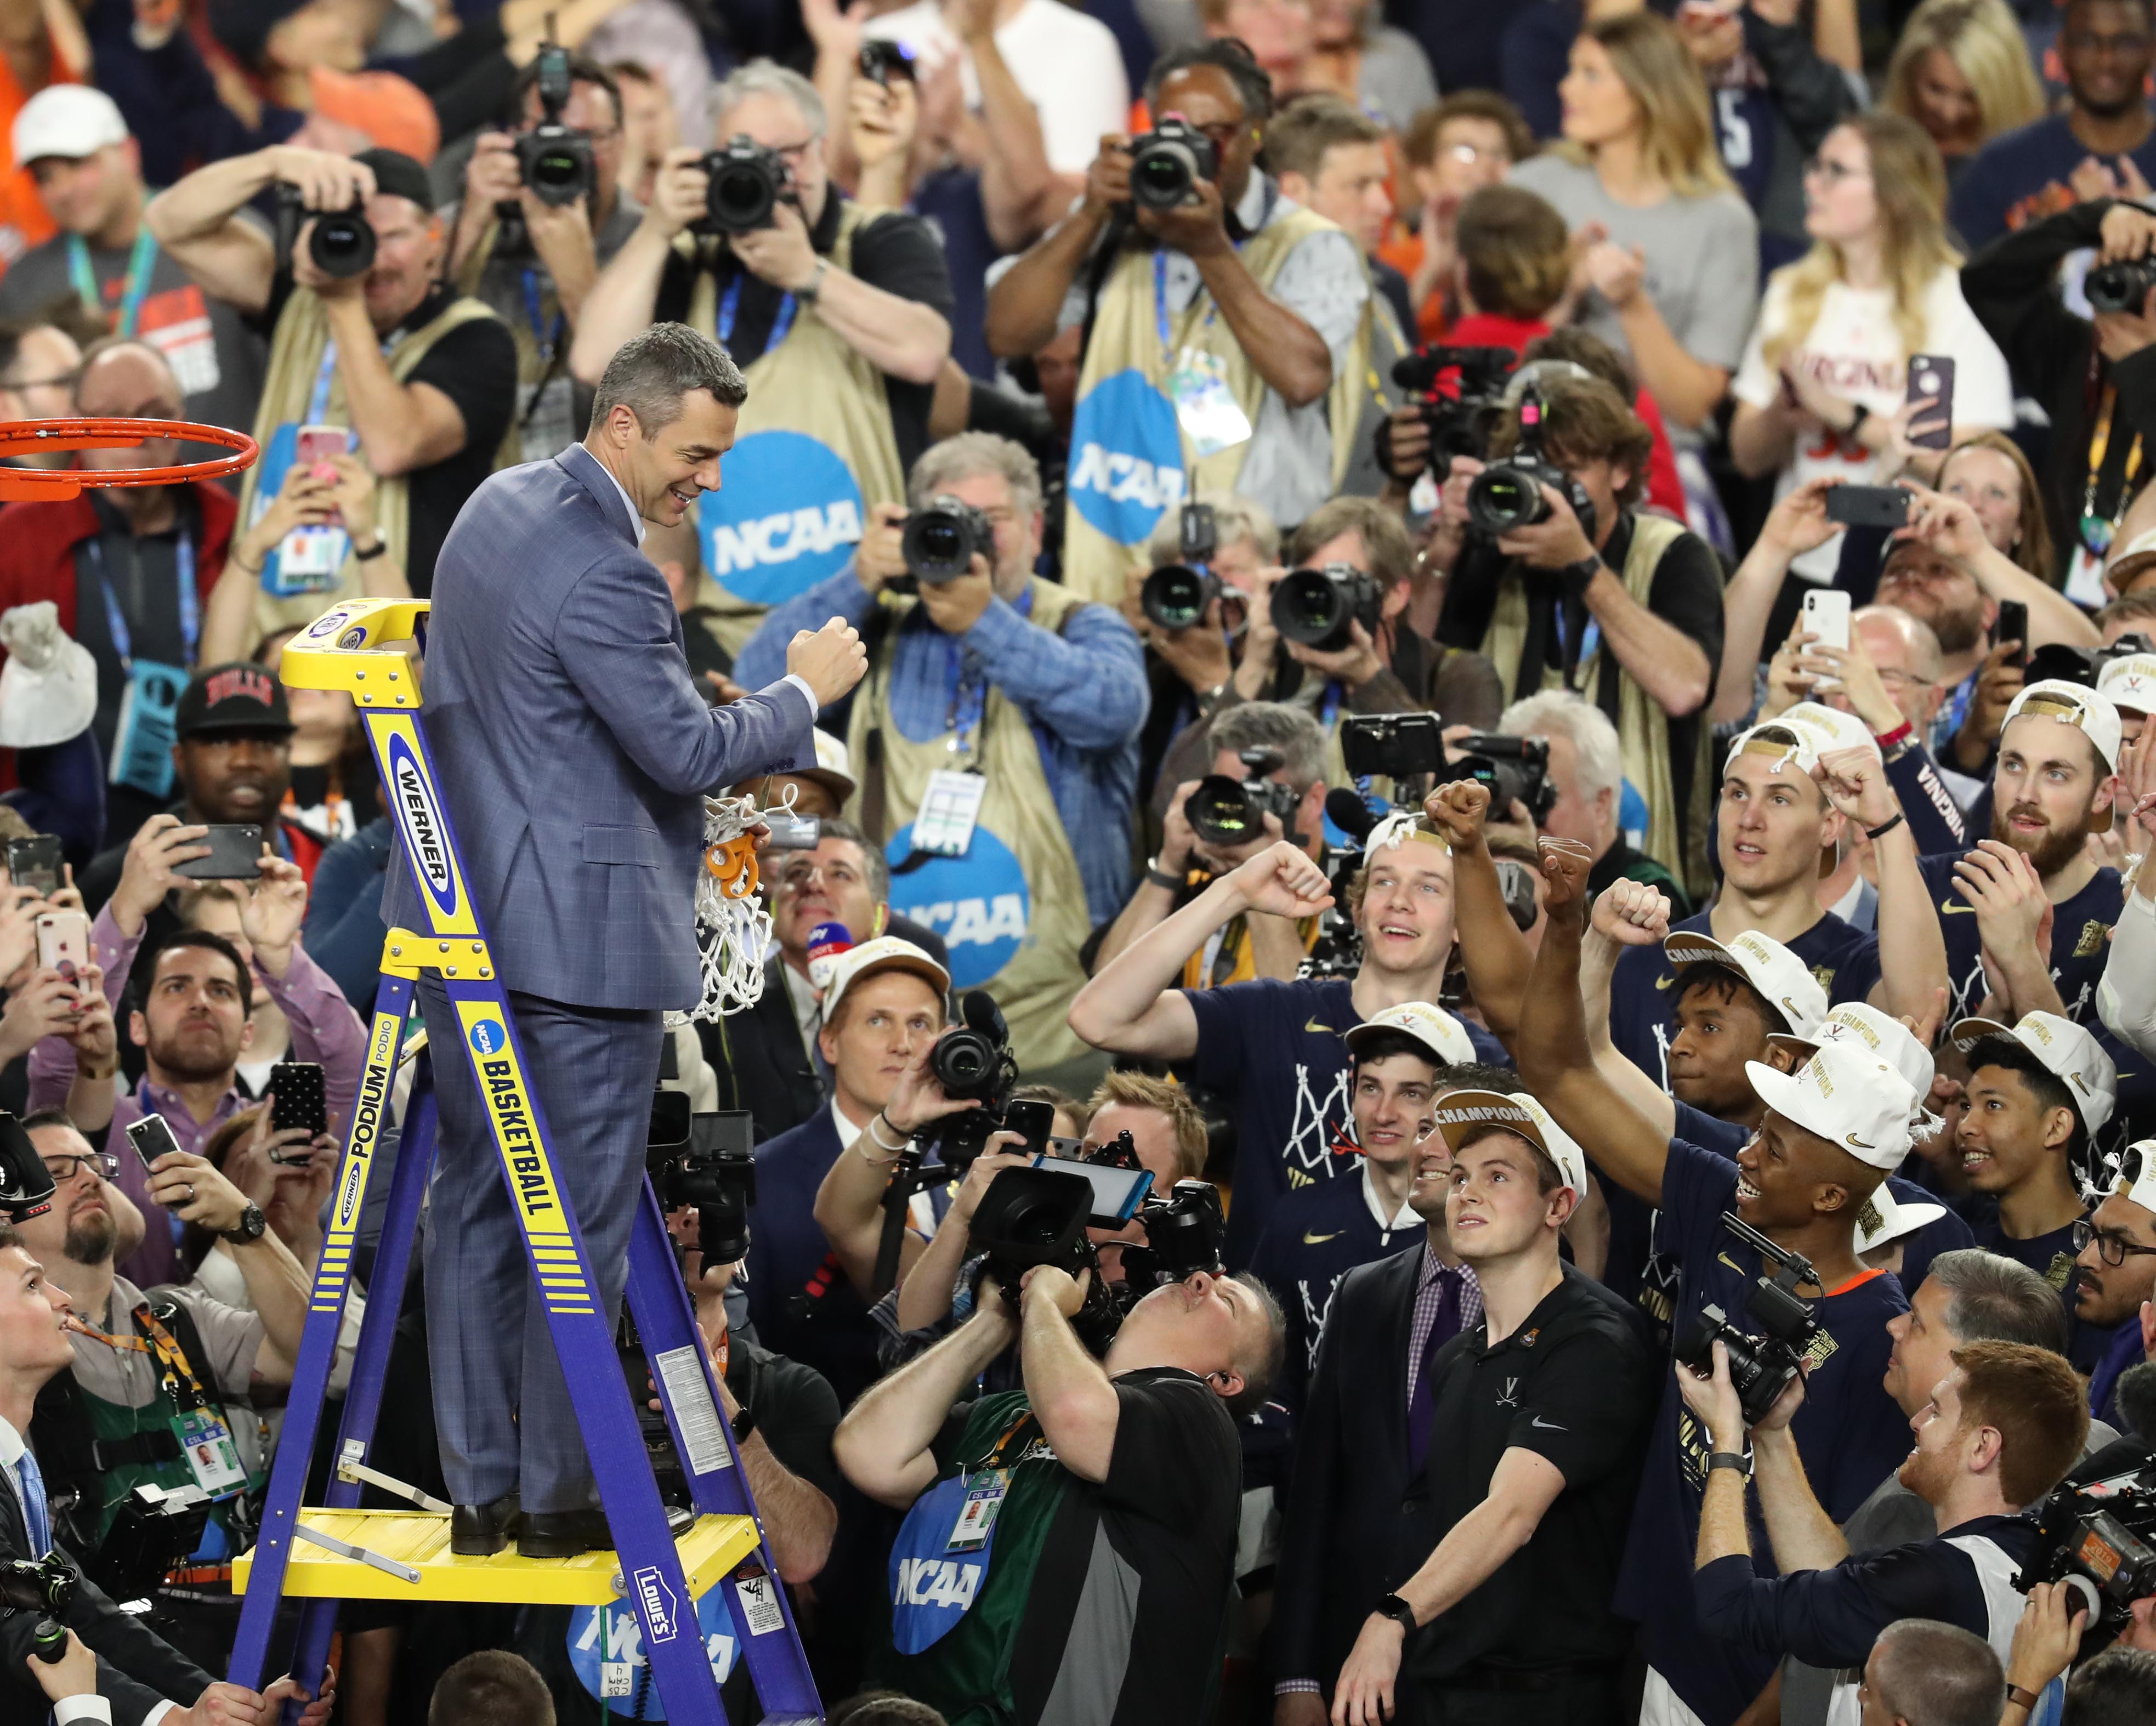 Virginia Basketball: Roster and recruiting update - Streaking The Lawn